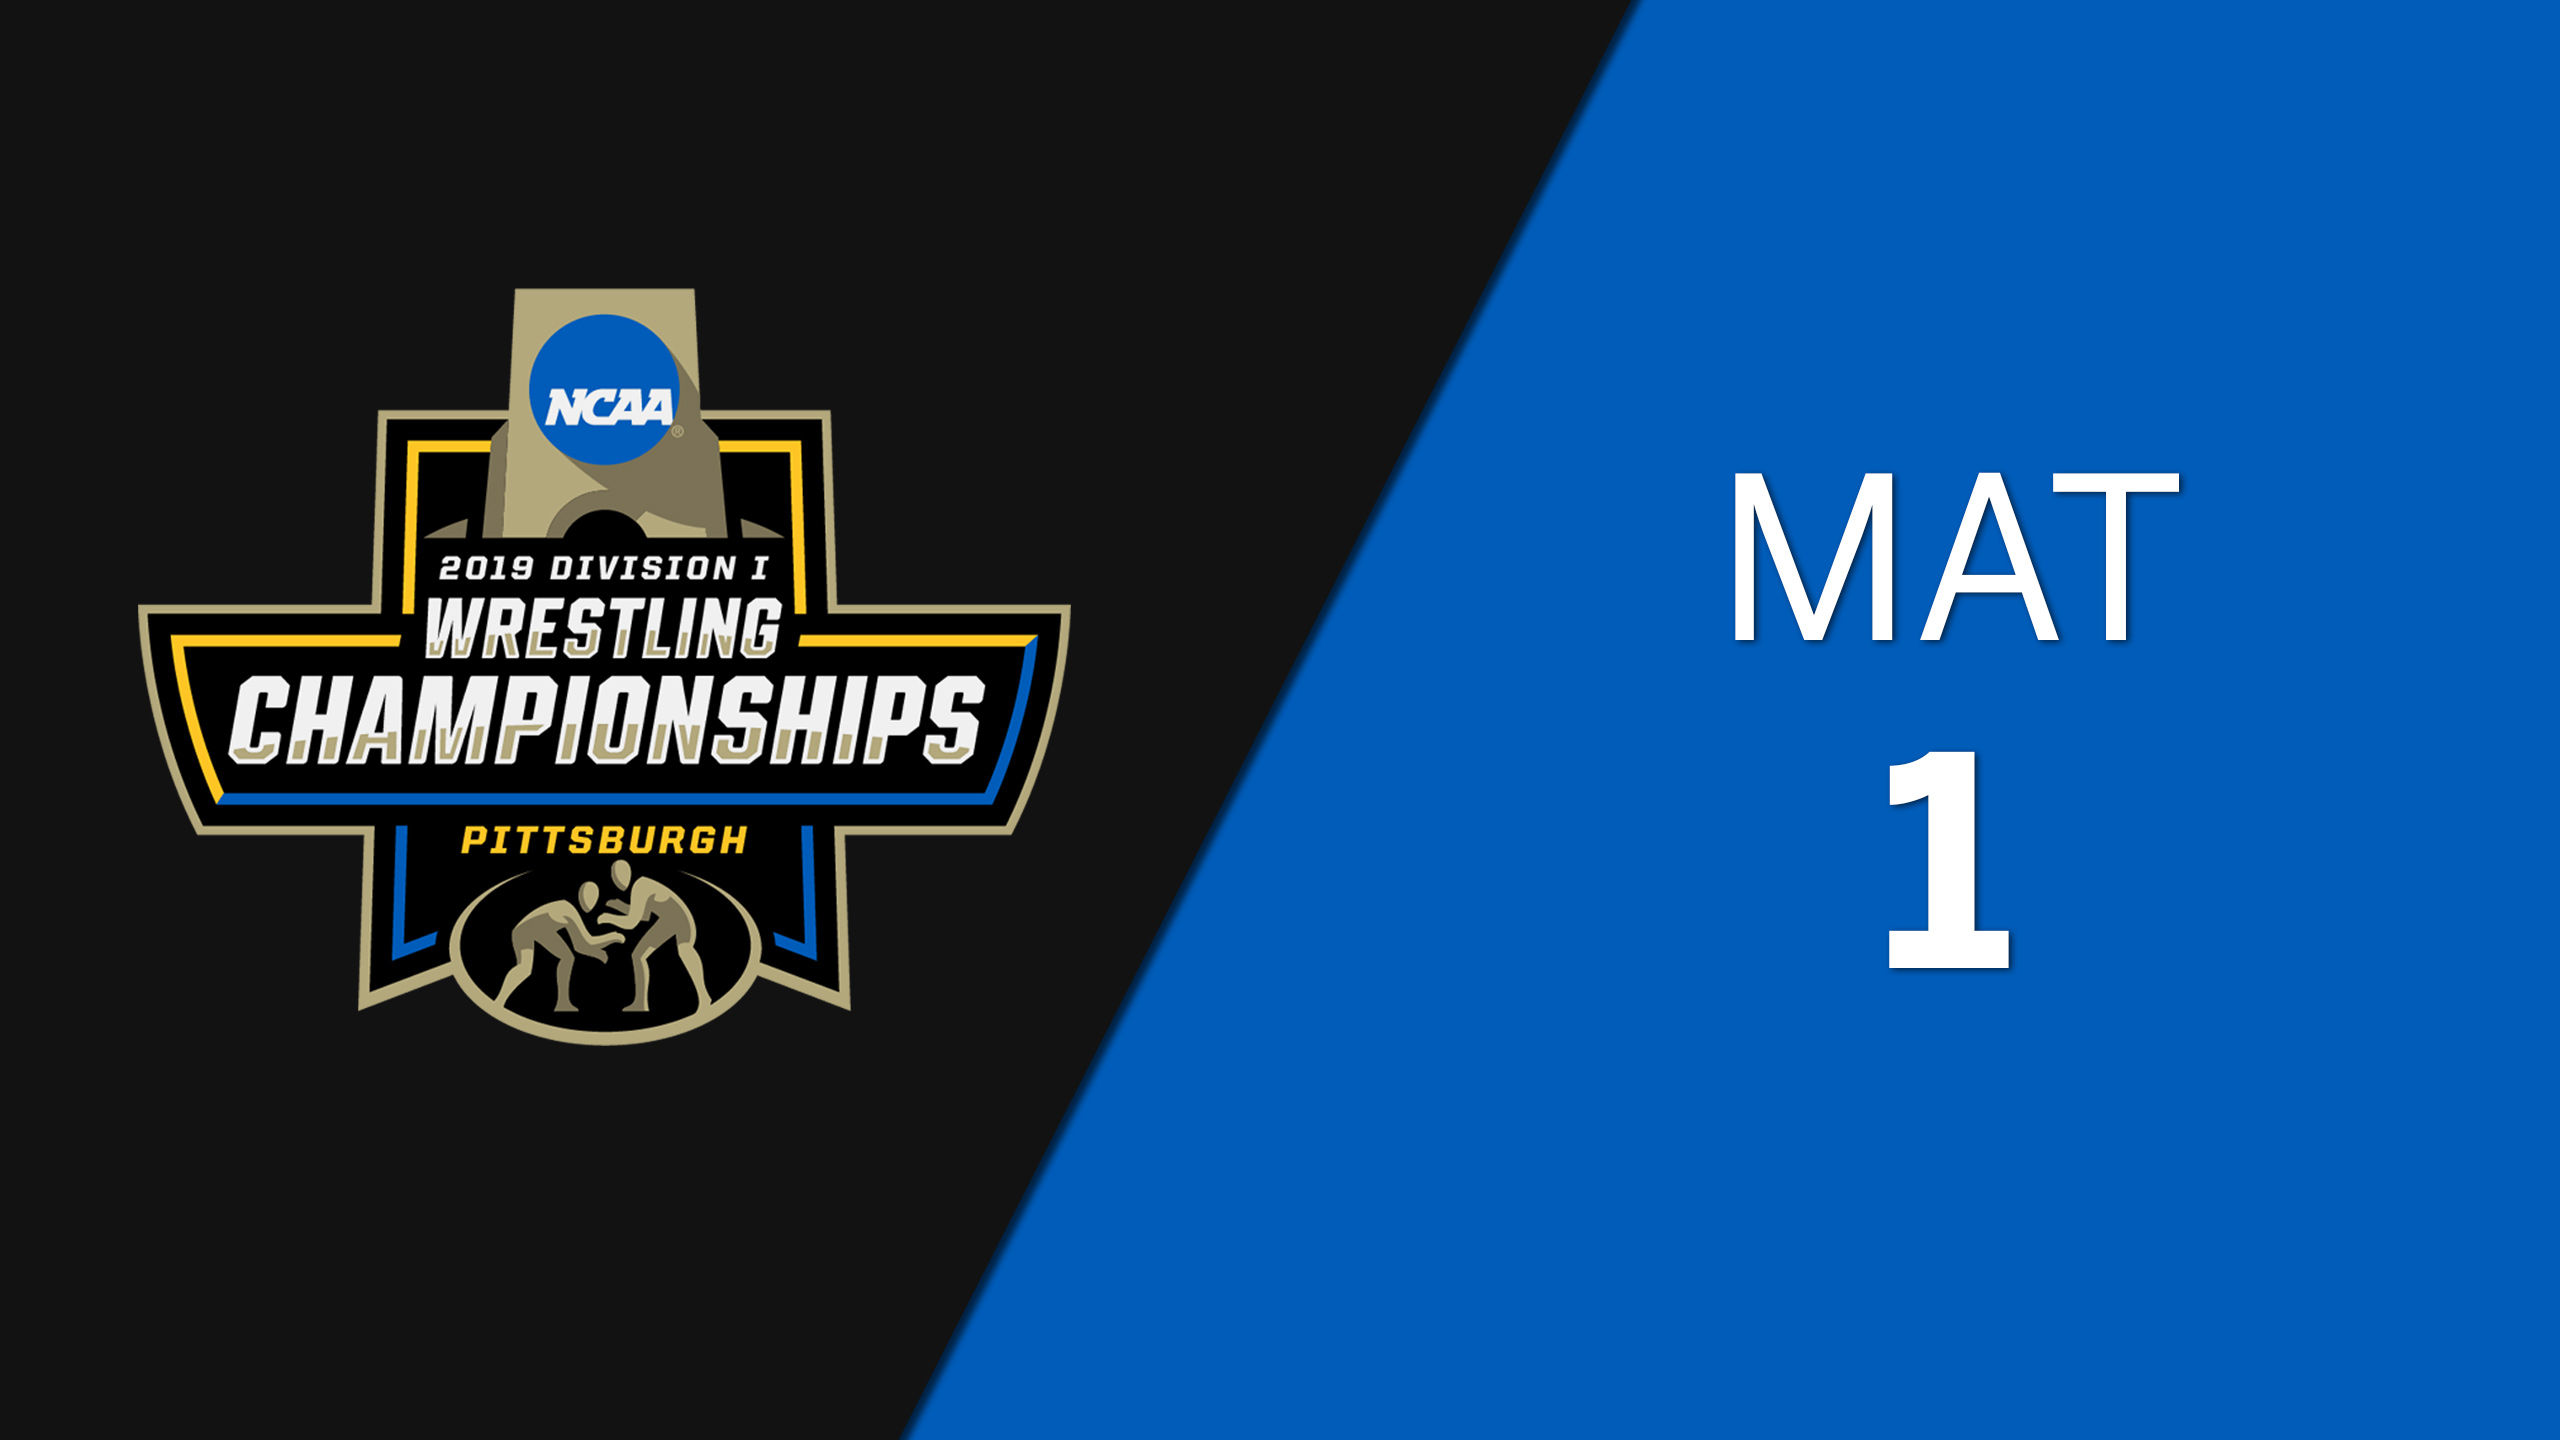 NCAA Wrestling Championship (Mat 1, Medal Round)